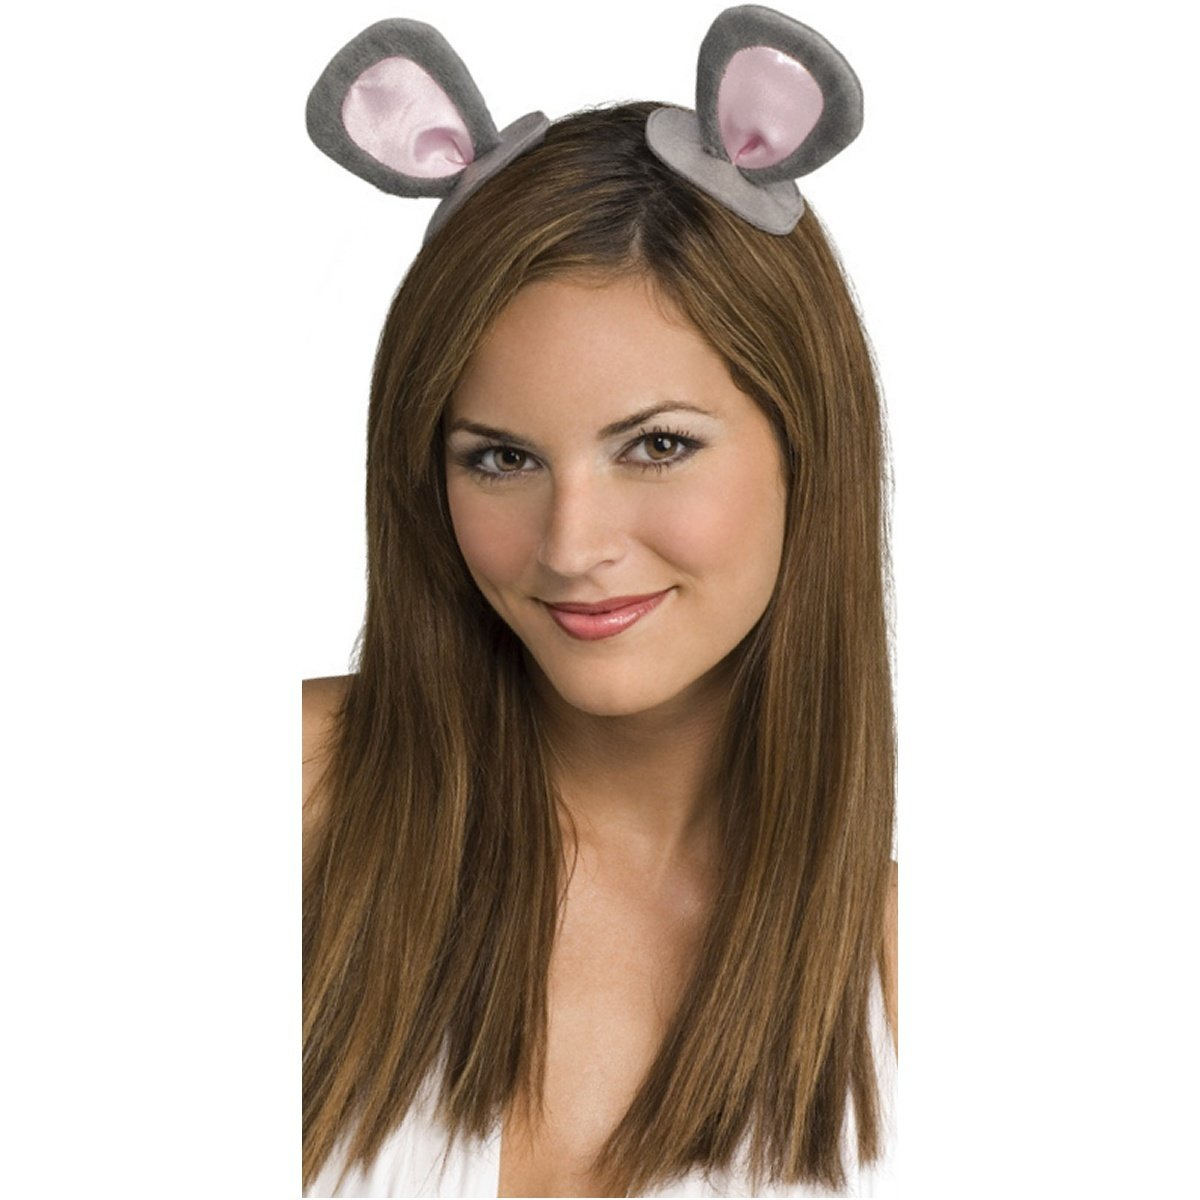 Clip On Mouse Ears Rubie's Costume RUB7632ACC